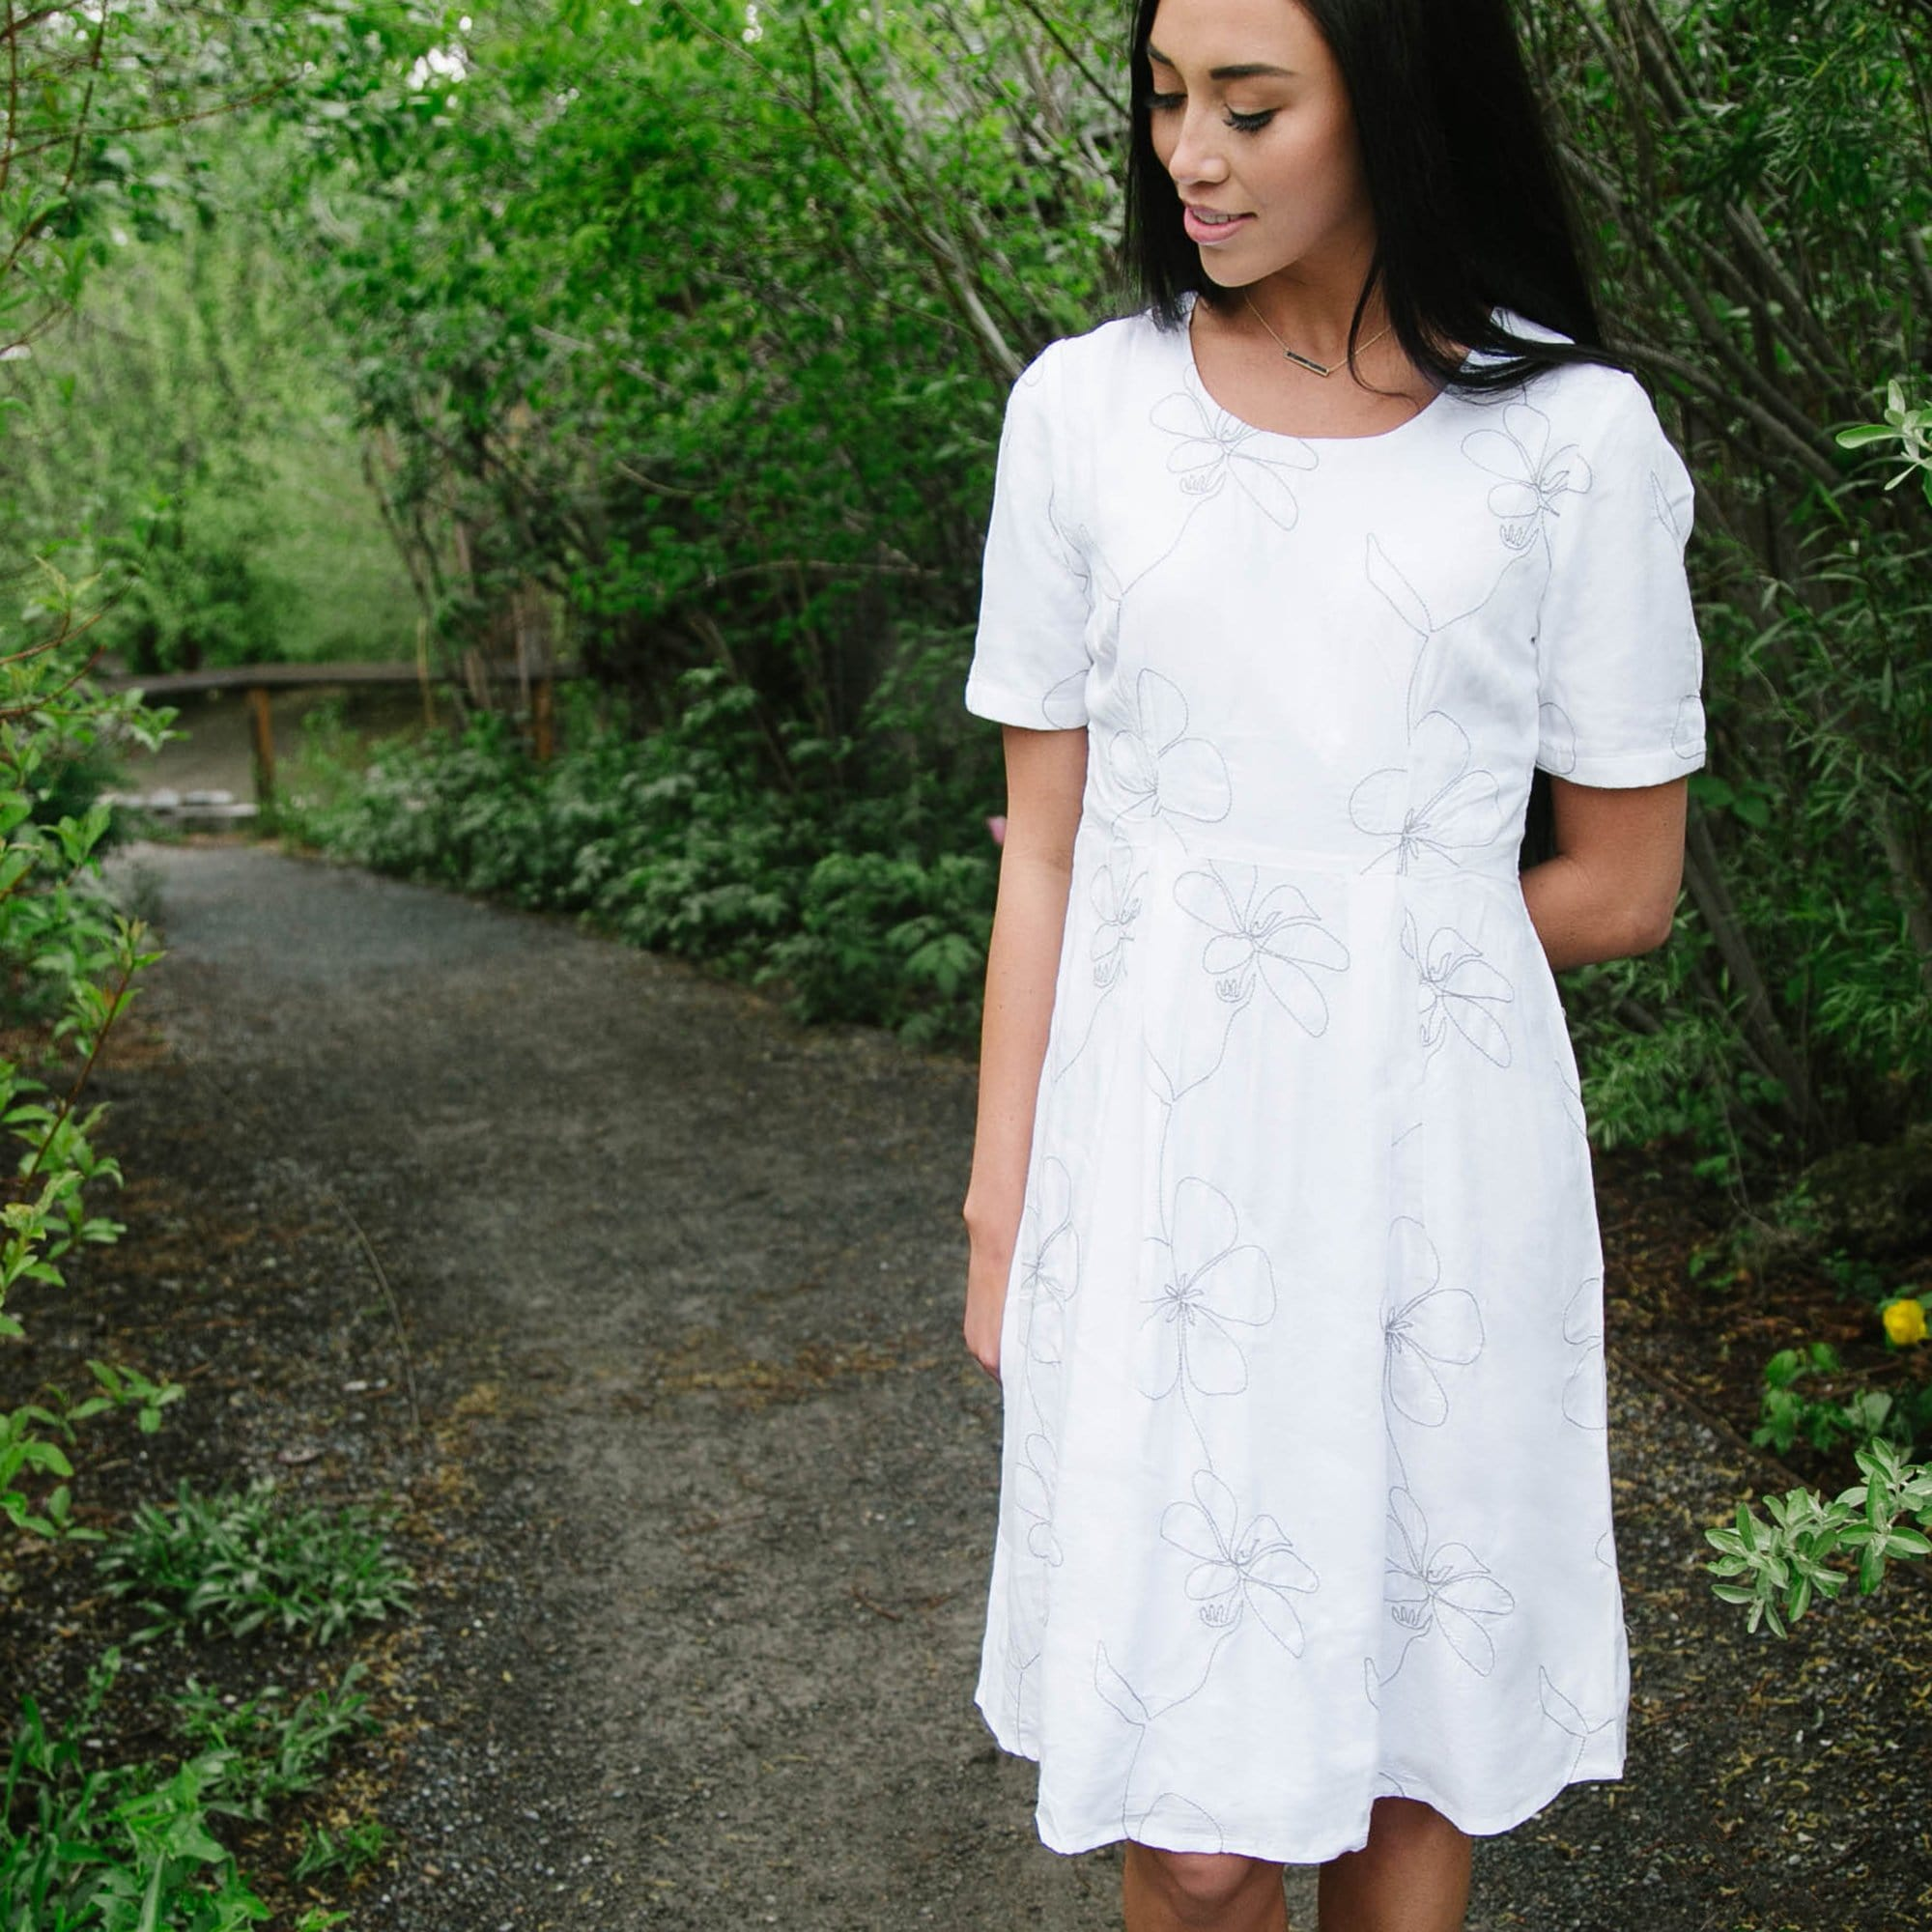 505530c6ba38 Short Sleeve Embroidered Dress - Downeast